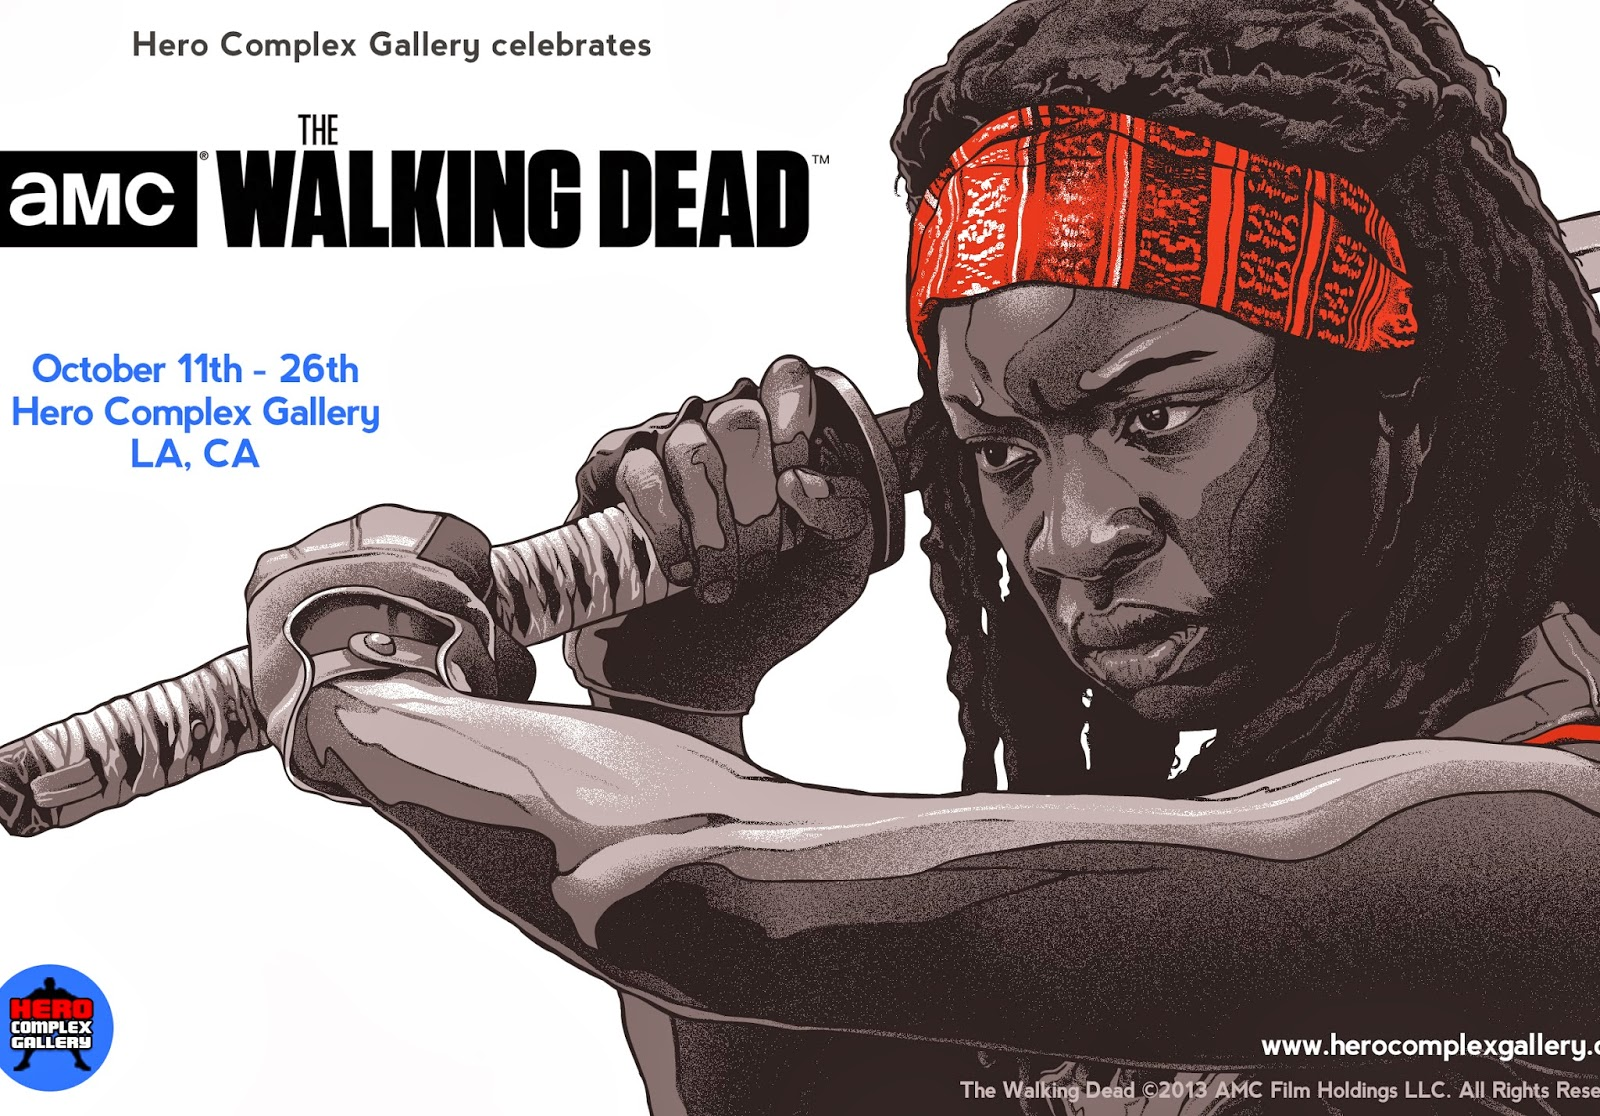 HCG Celebrates AMC's The Walking Dead - Zombie of the Week